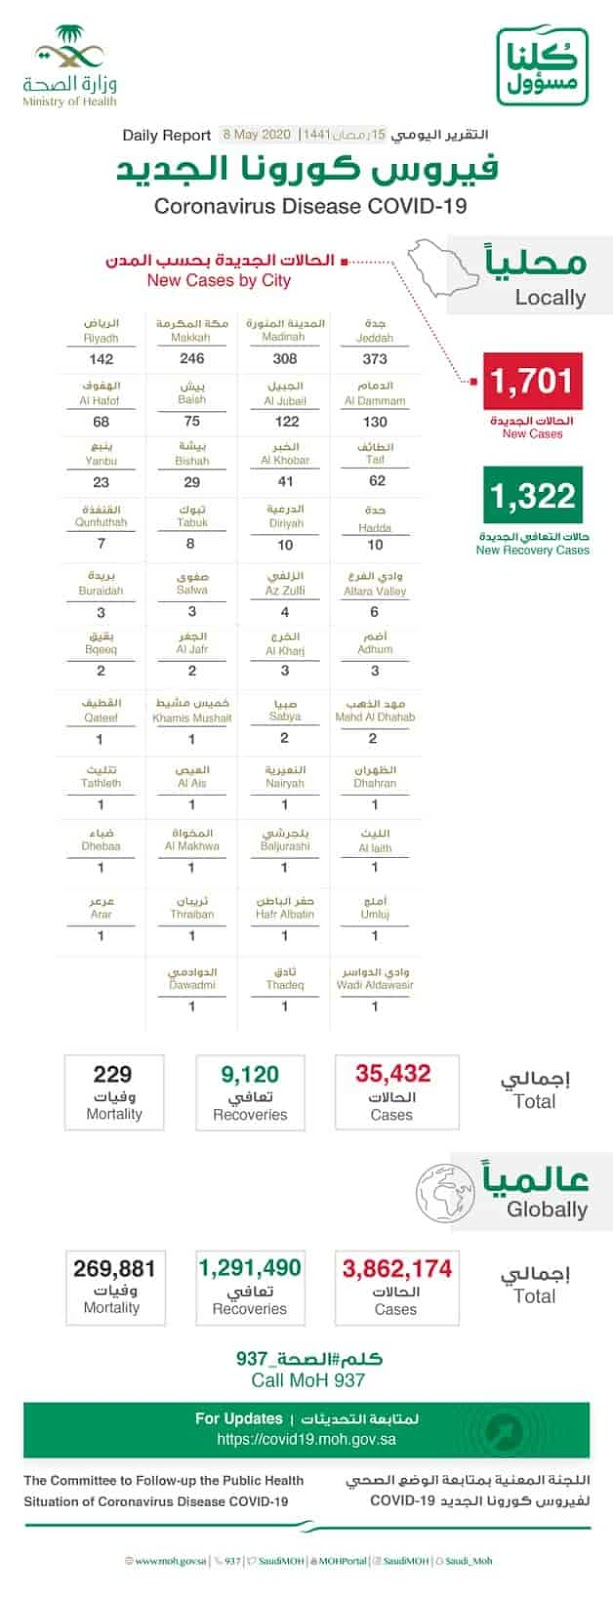 1322 new Recovered, 10 new Deaths, 1701 new Infections, Total 35432 Corona cases in Saudi Arabia